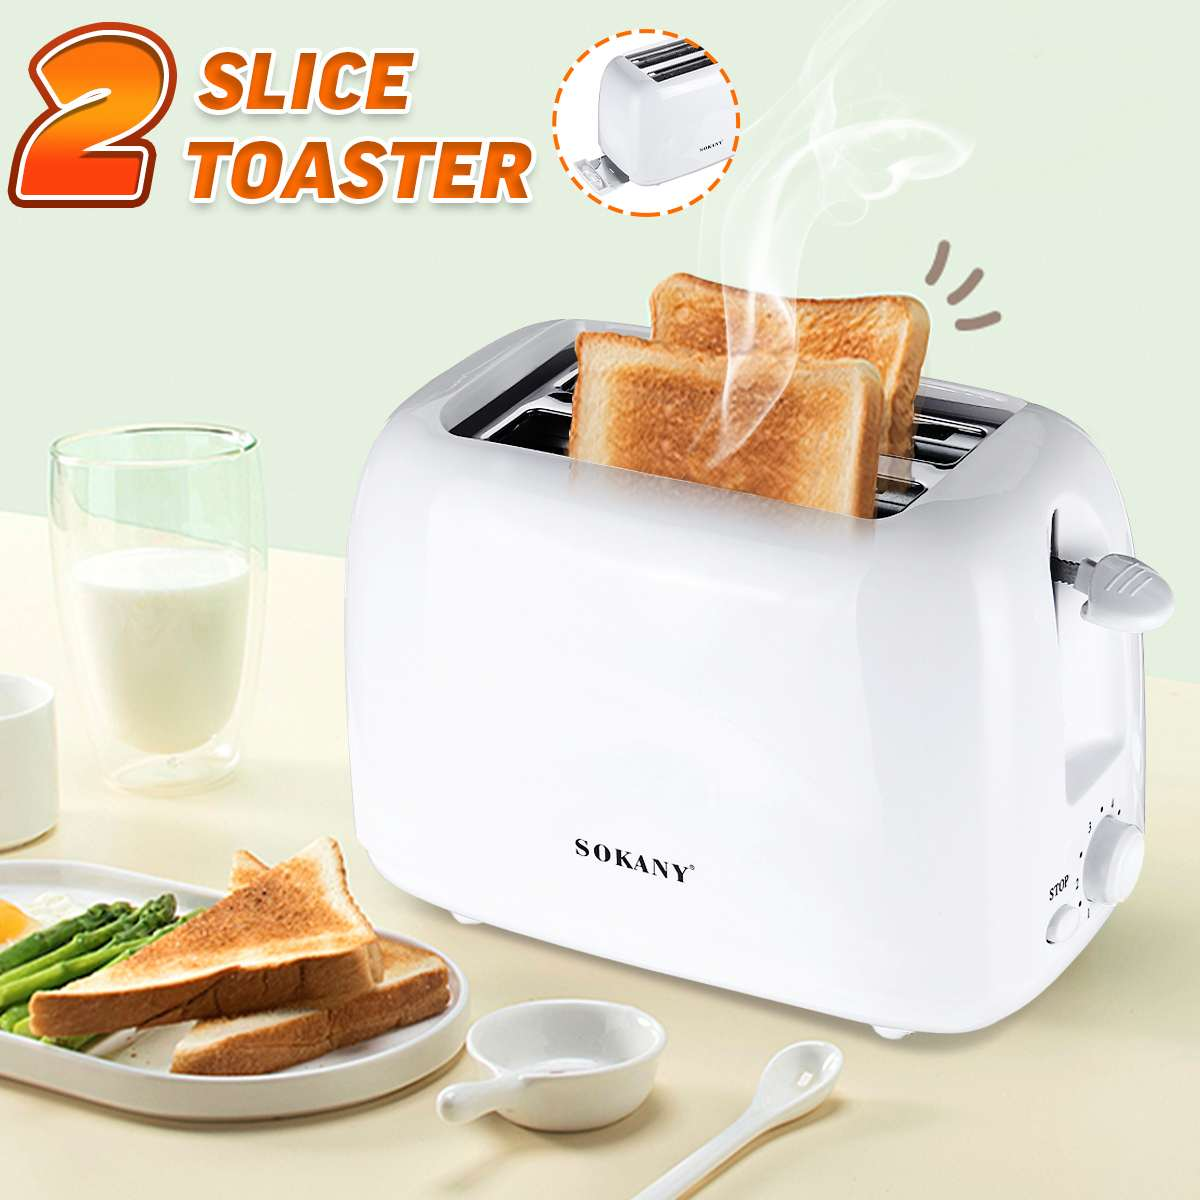 700W Toaster Automatic 2 Slice Breakfast Sandwich Maker Machine 220-240V Home Office Toasters 6-speed Baking Cooking Appliances